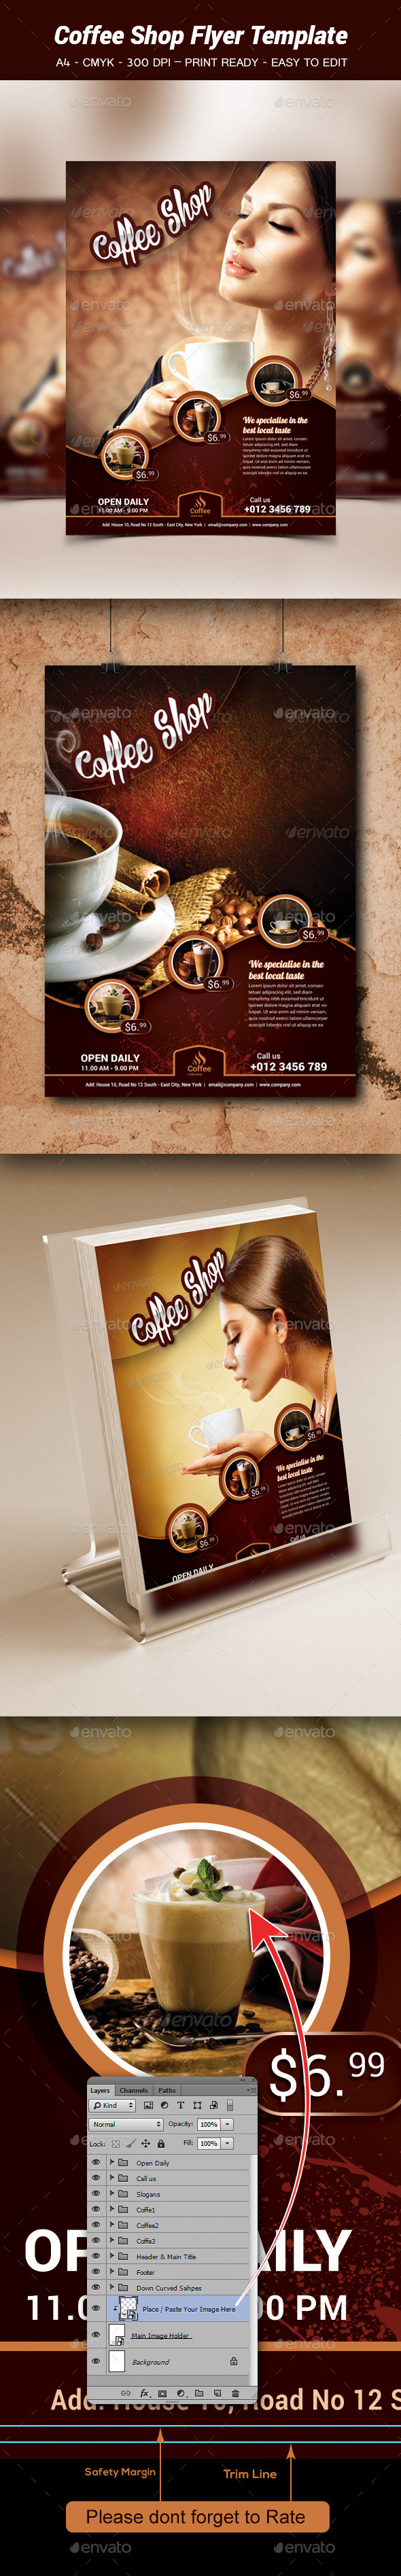 Coffe Shop Flyer Template